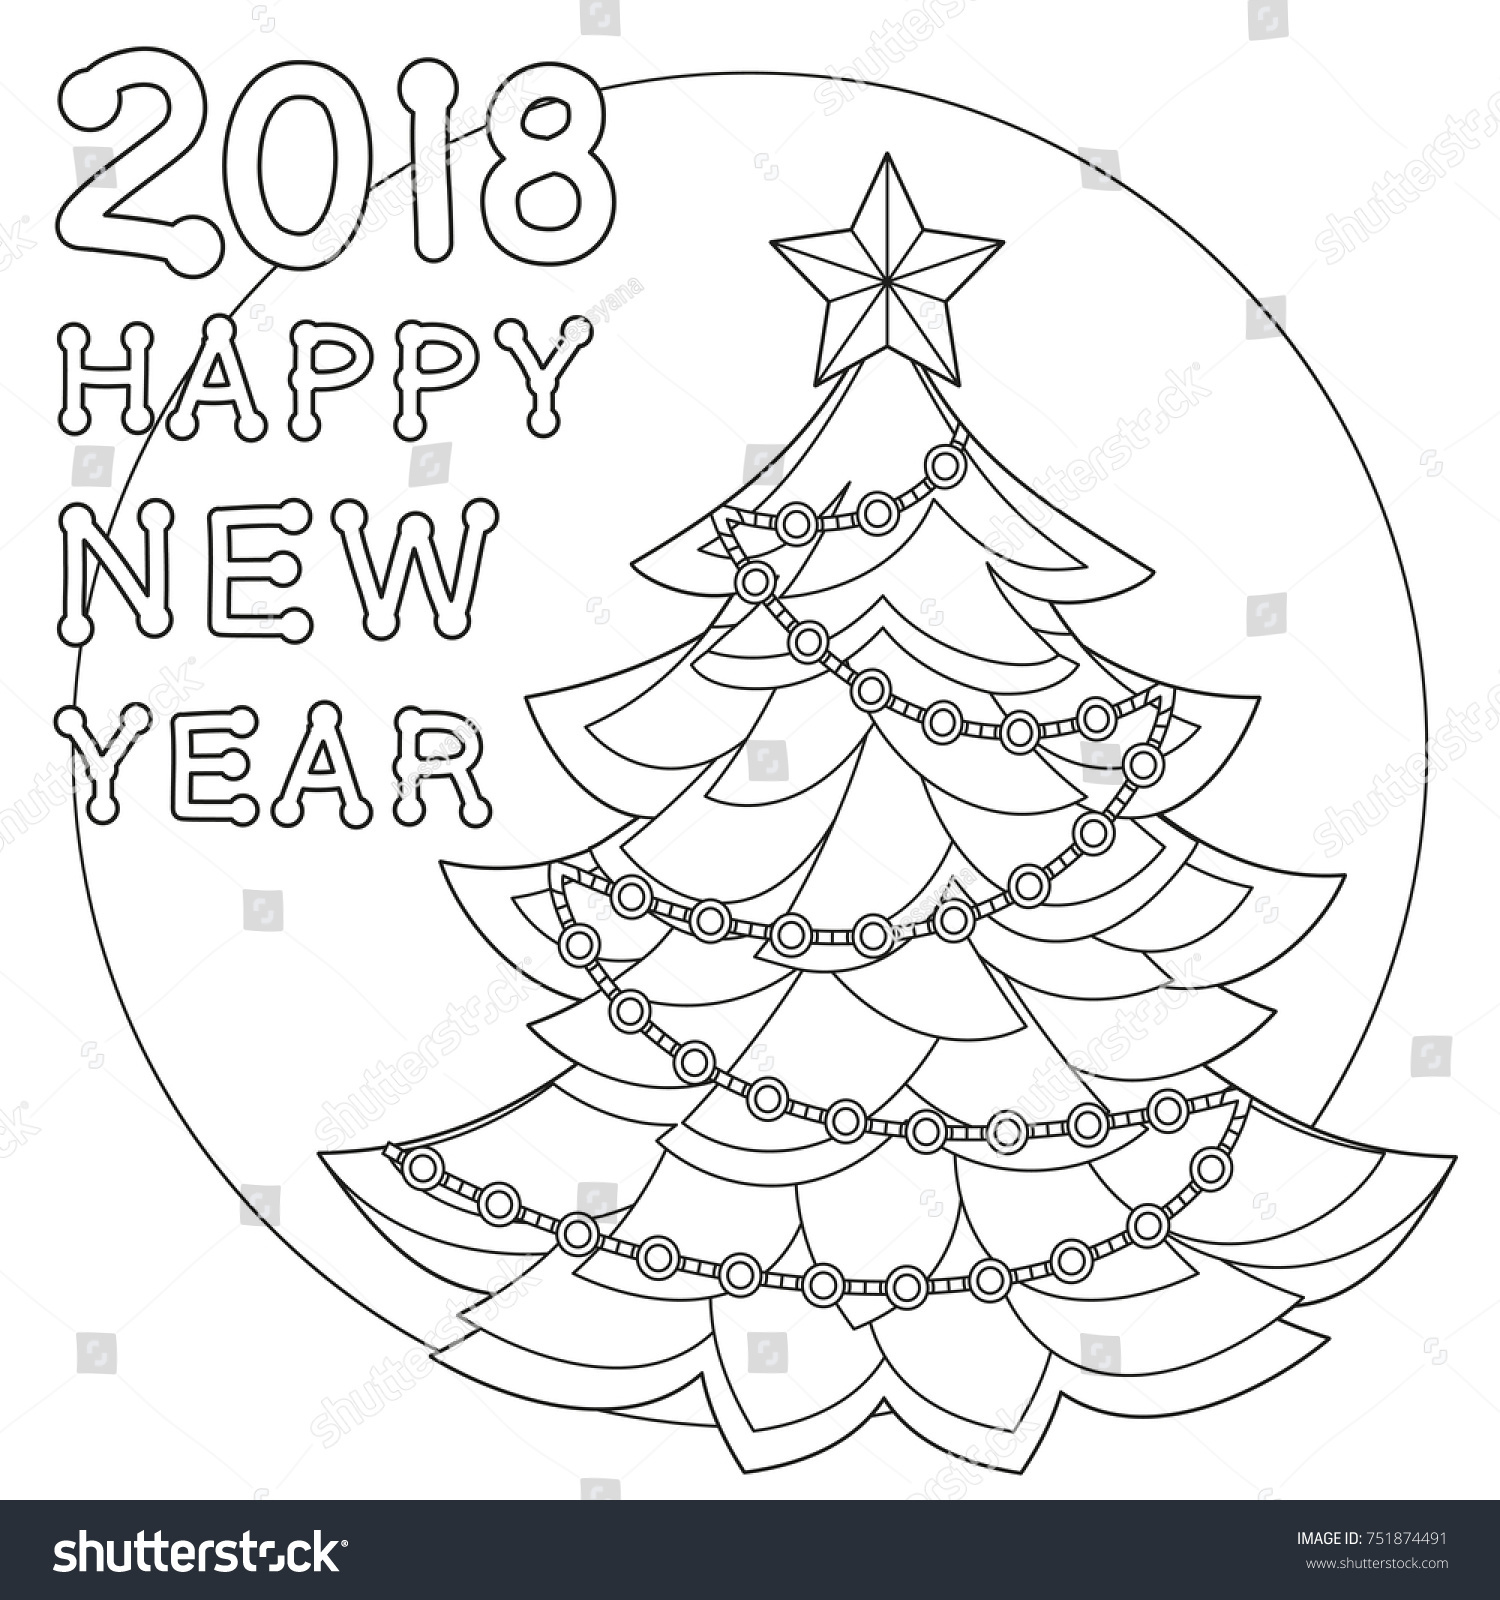 2018 happy new year black and white poster coloring book page for adults and kids